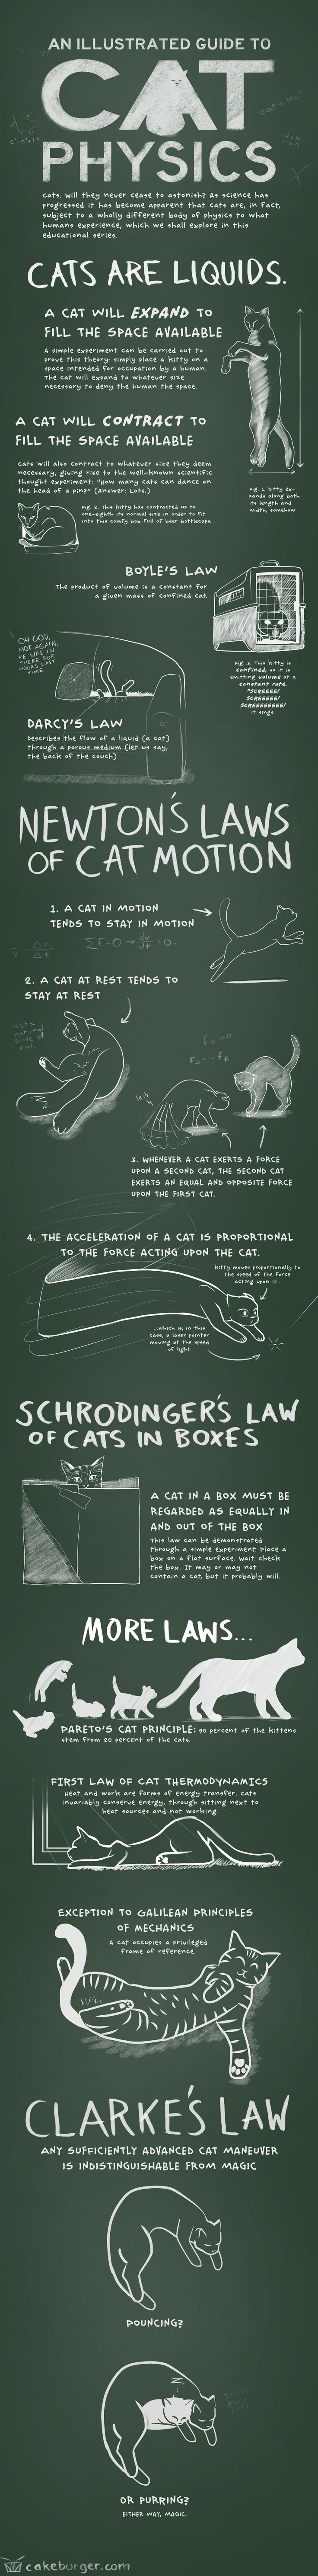 The Elegant Kitty-Verse : Illustrated Guide to Cat Physics brings new meaning to String Theory.